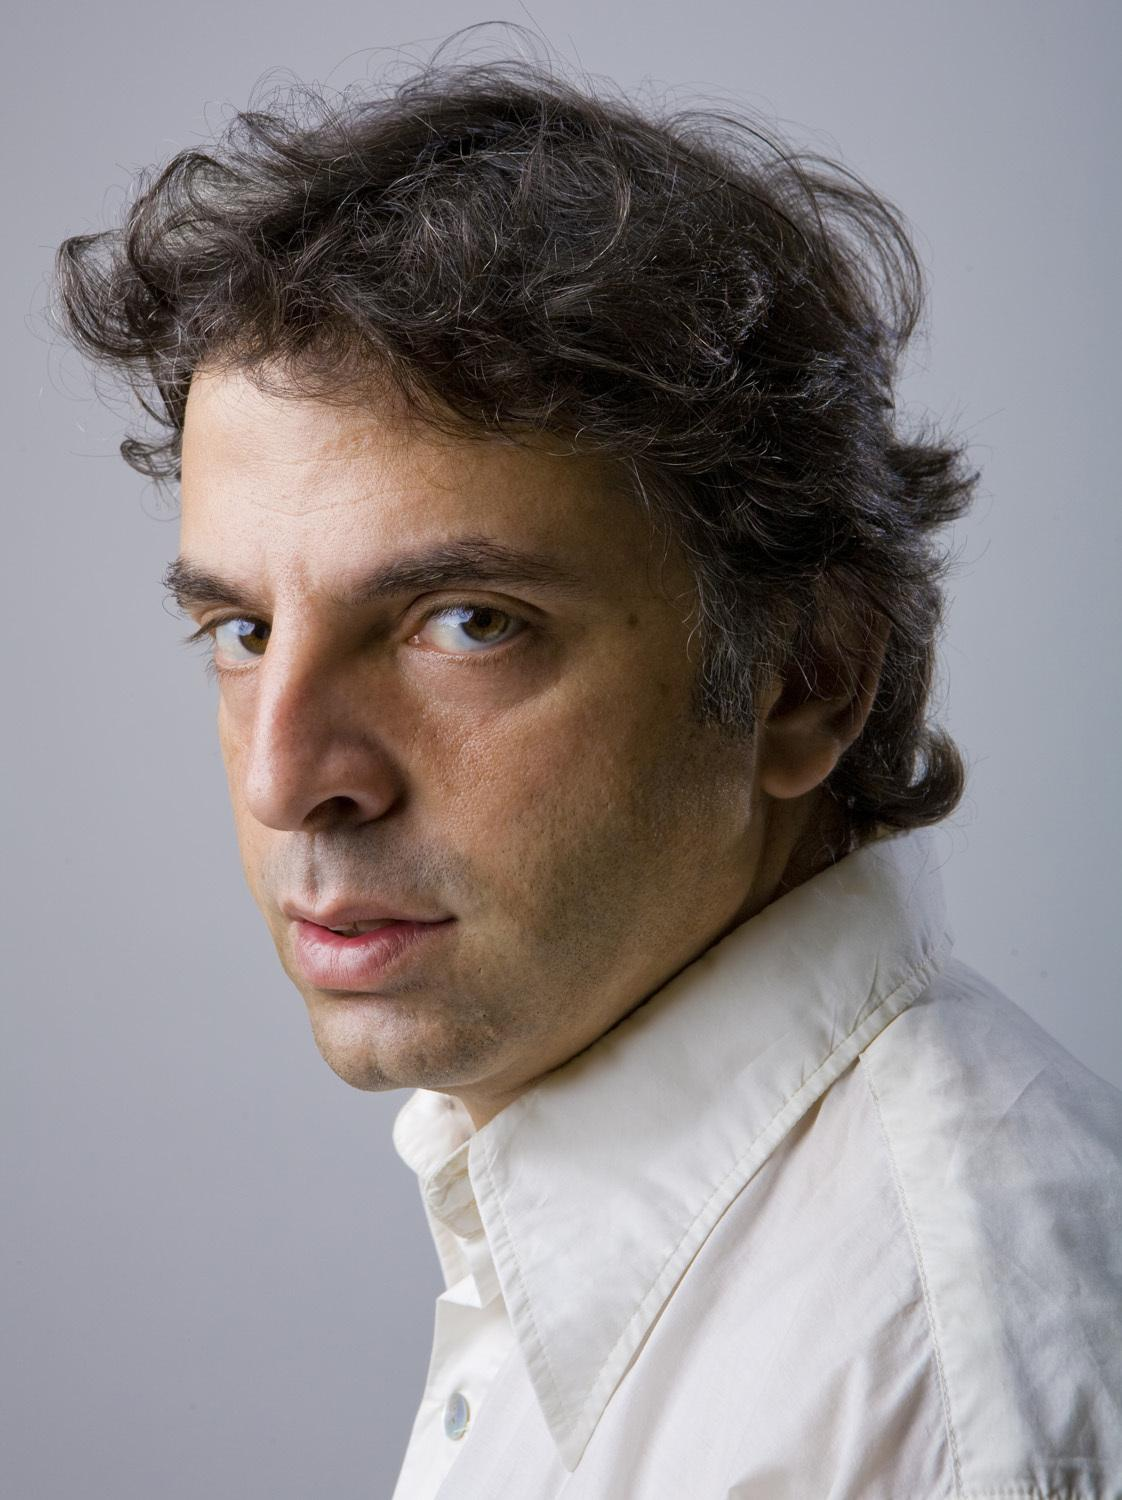 Etgar Keret's other work includes the story collection Suddenly, a Knock on the Door.